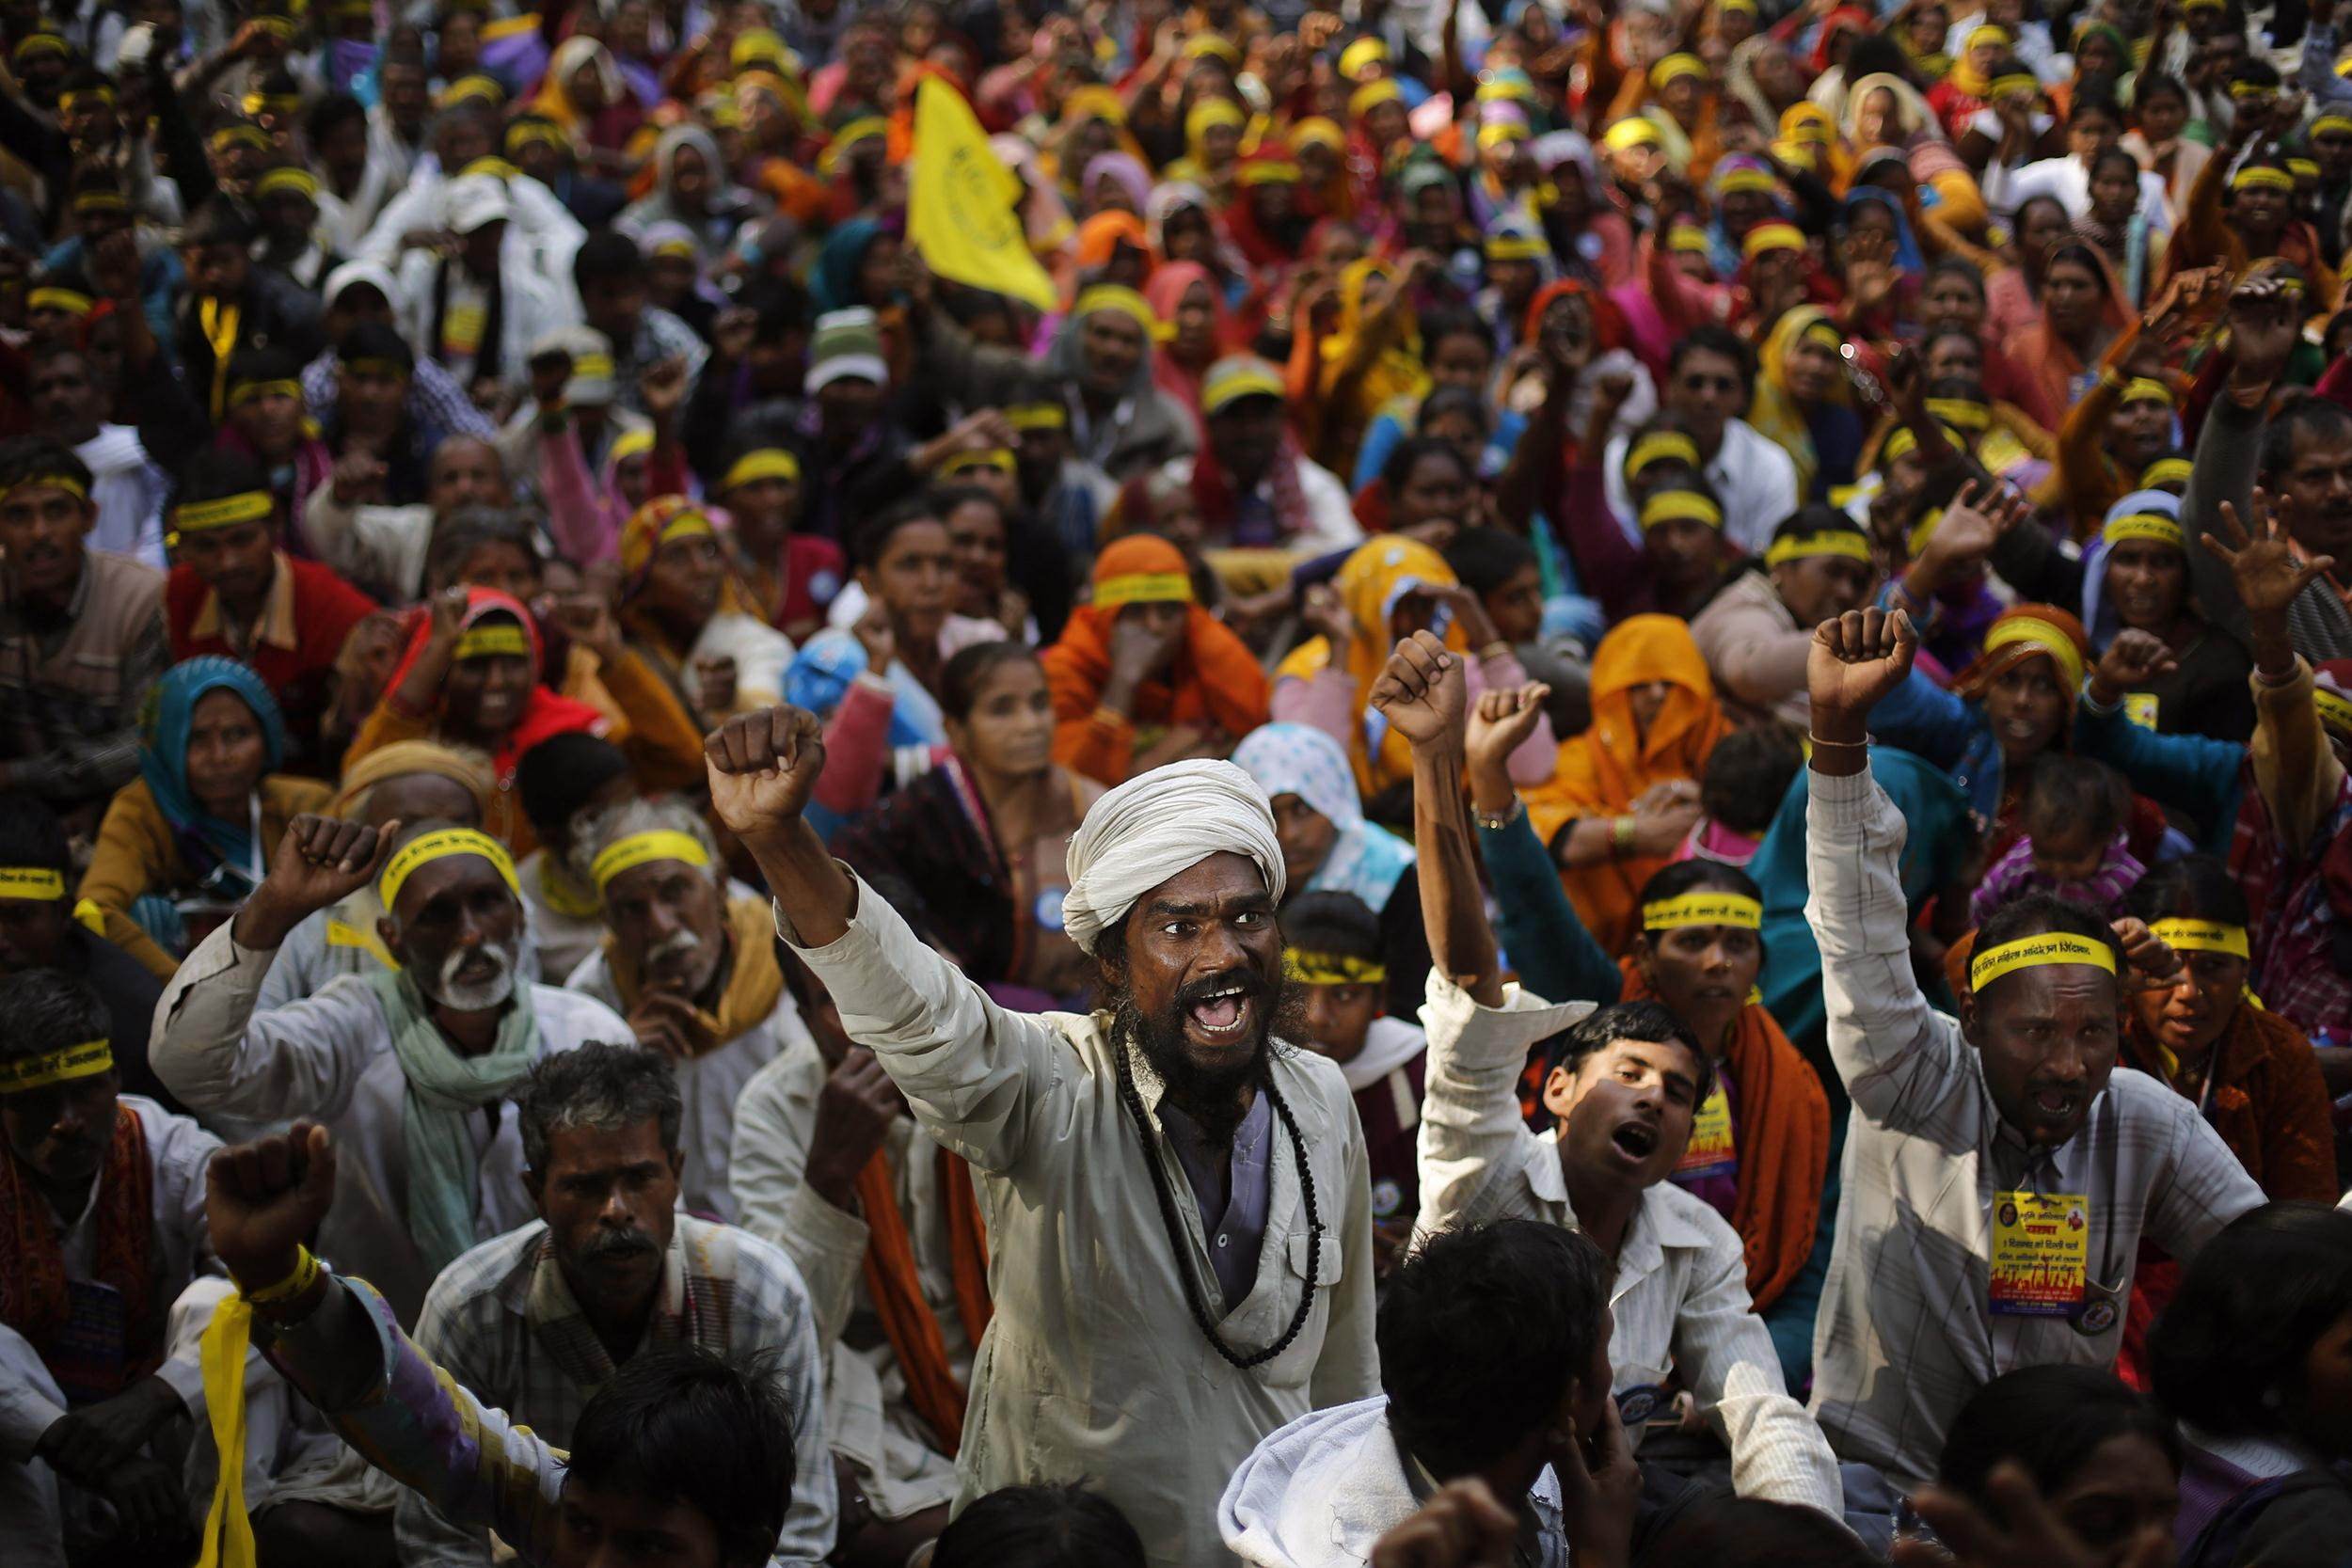 Image: Indian dalits, or untouchables, shout slogans demanding equal growth opportunities